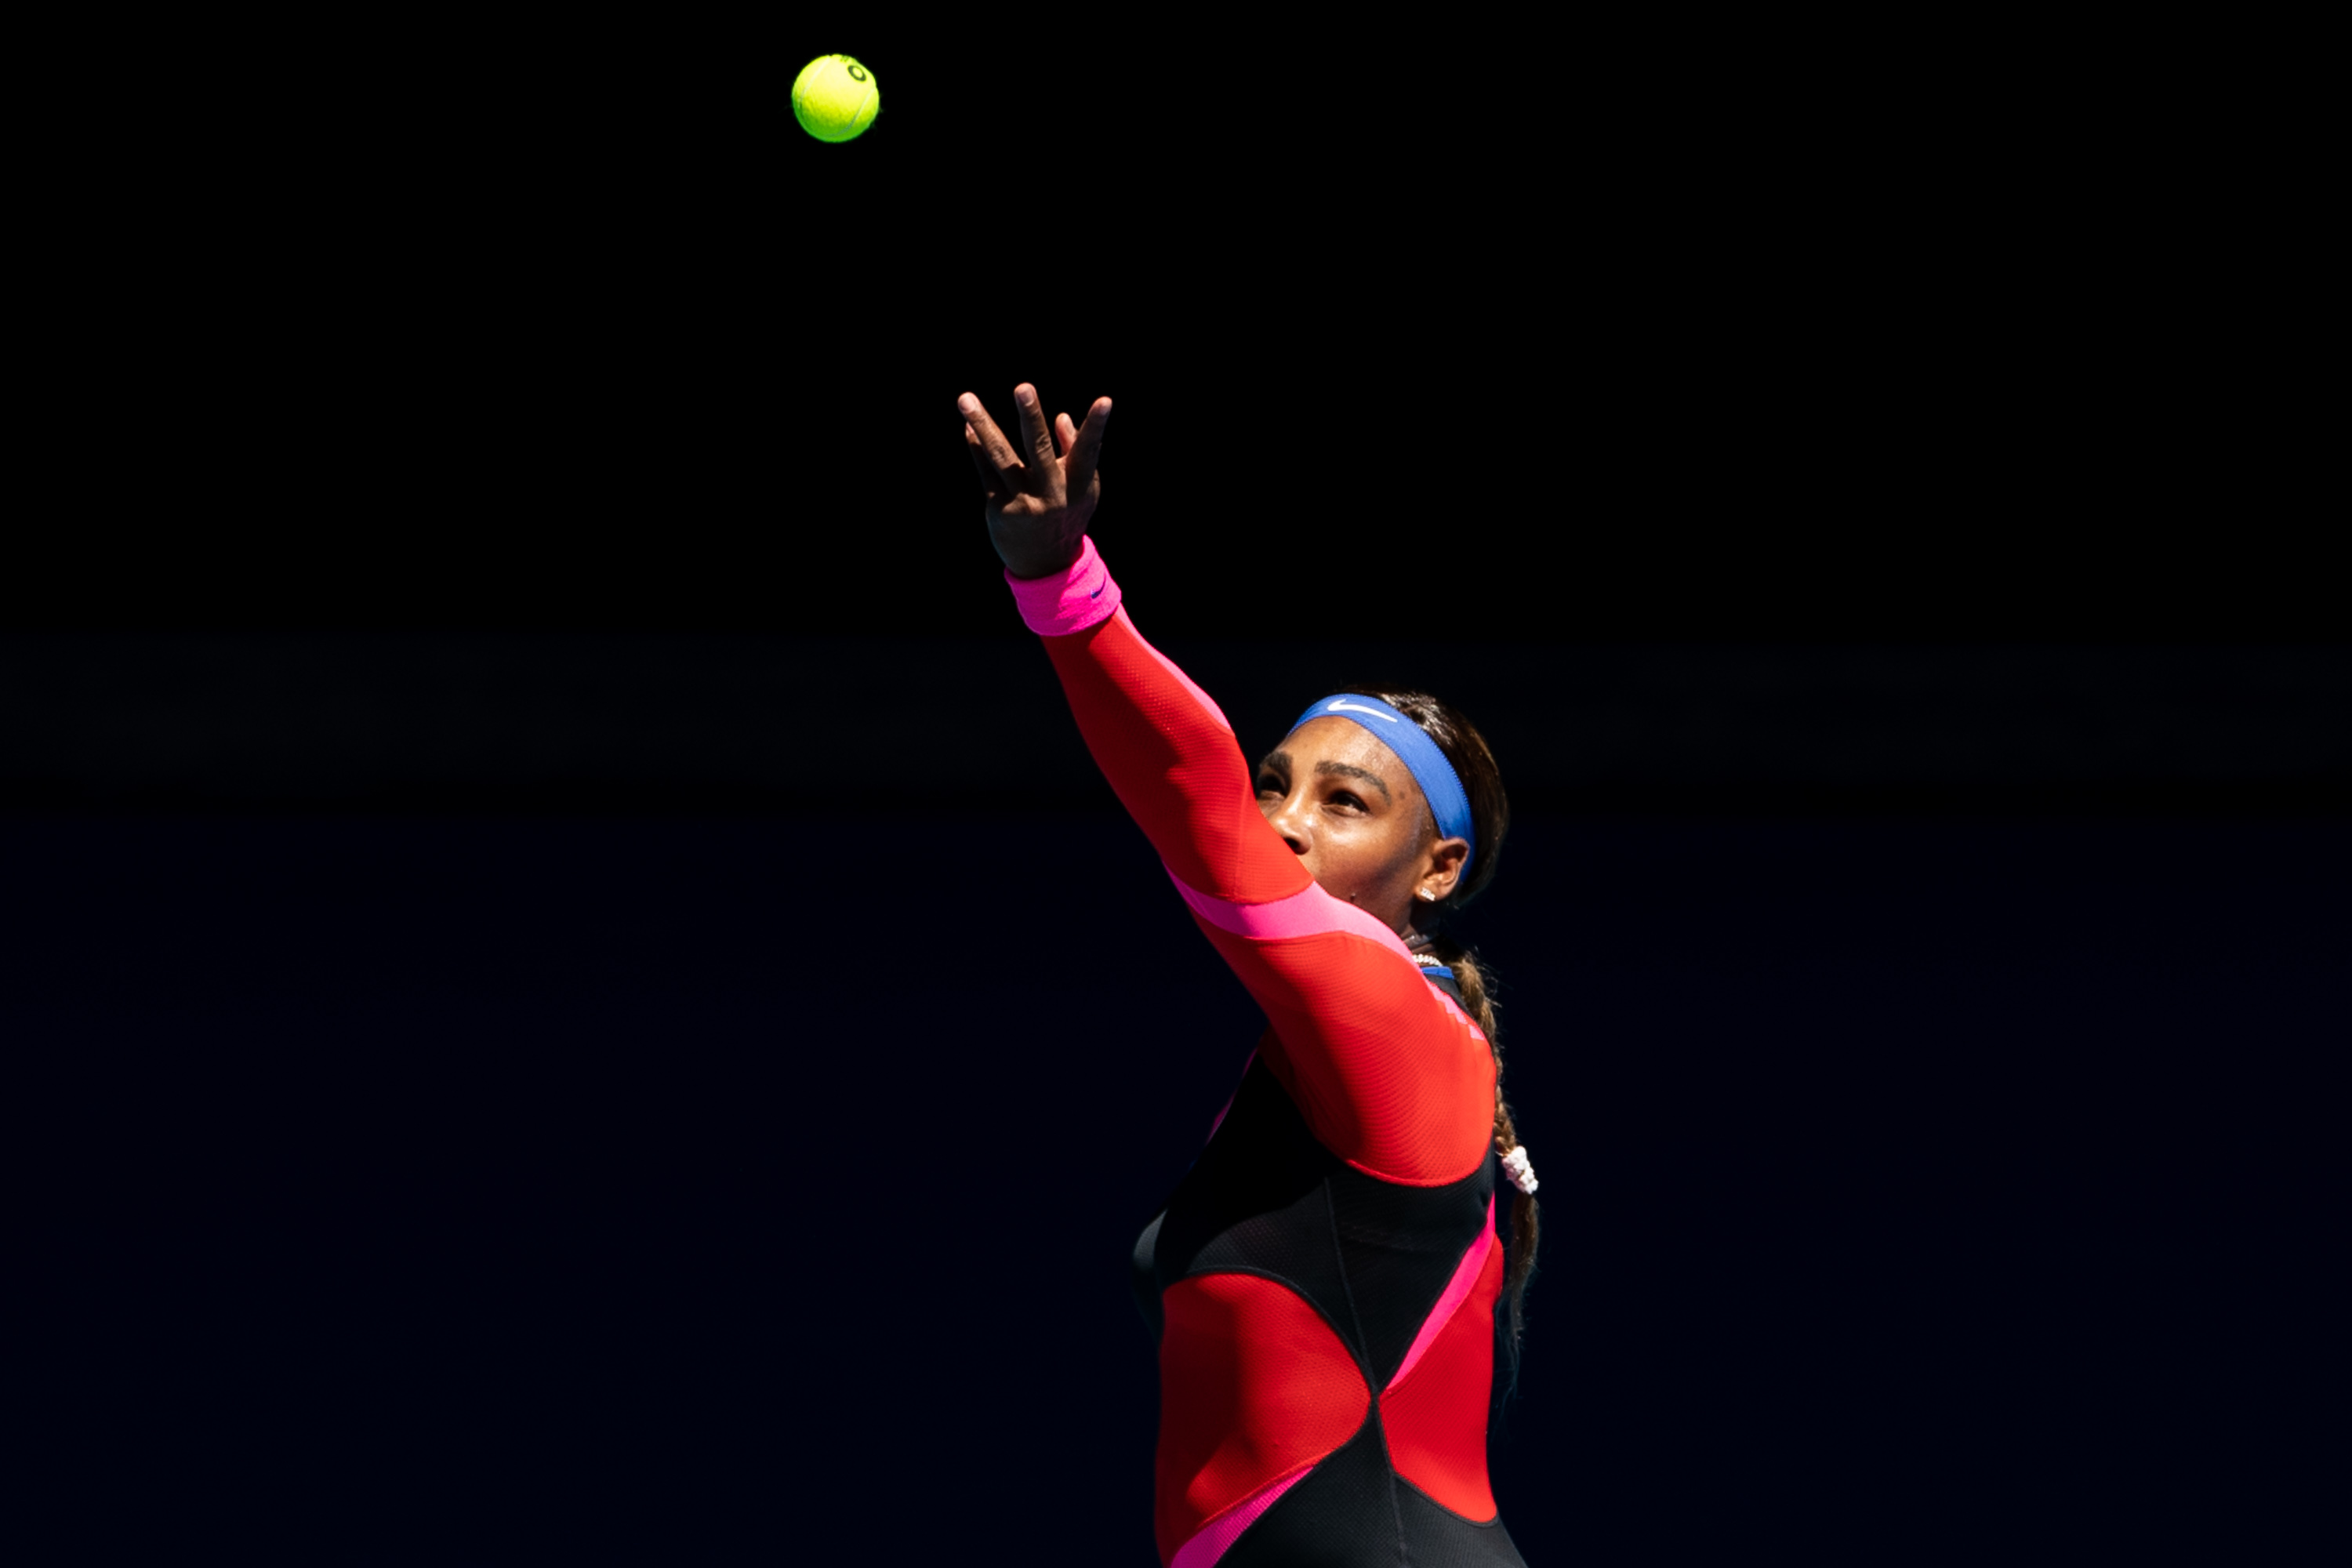 Serena Williams tossing the ball up for a serve during a tennis match